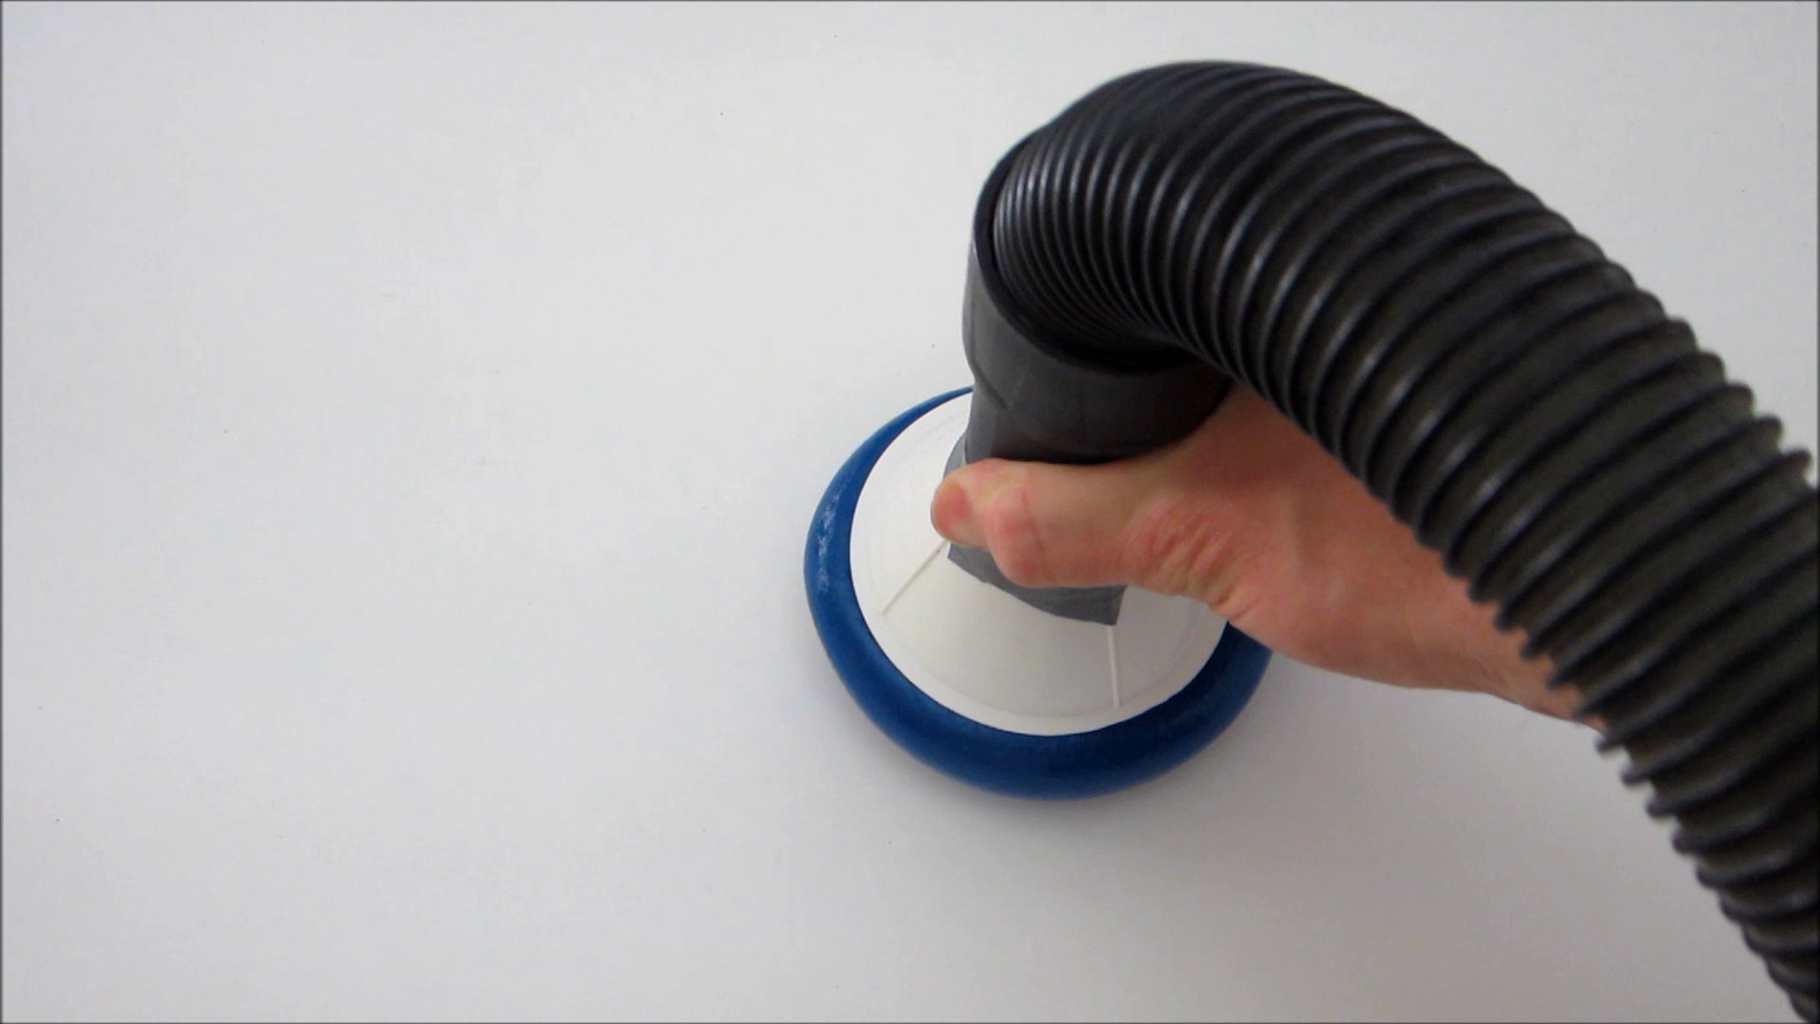 Use the Universal Gripper to Pick Up Objects